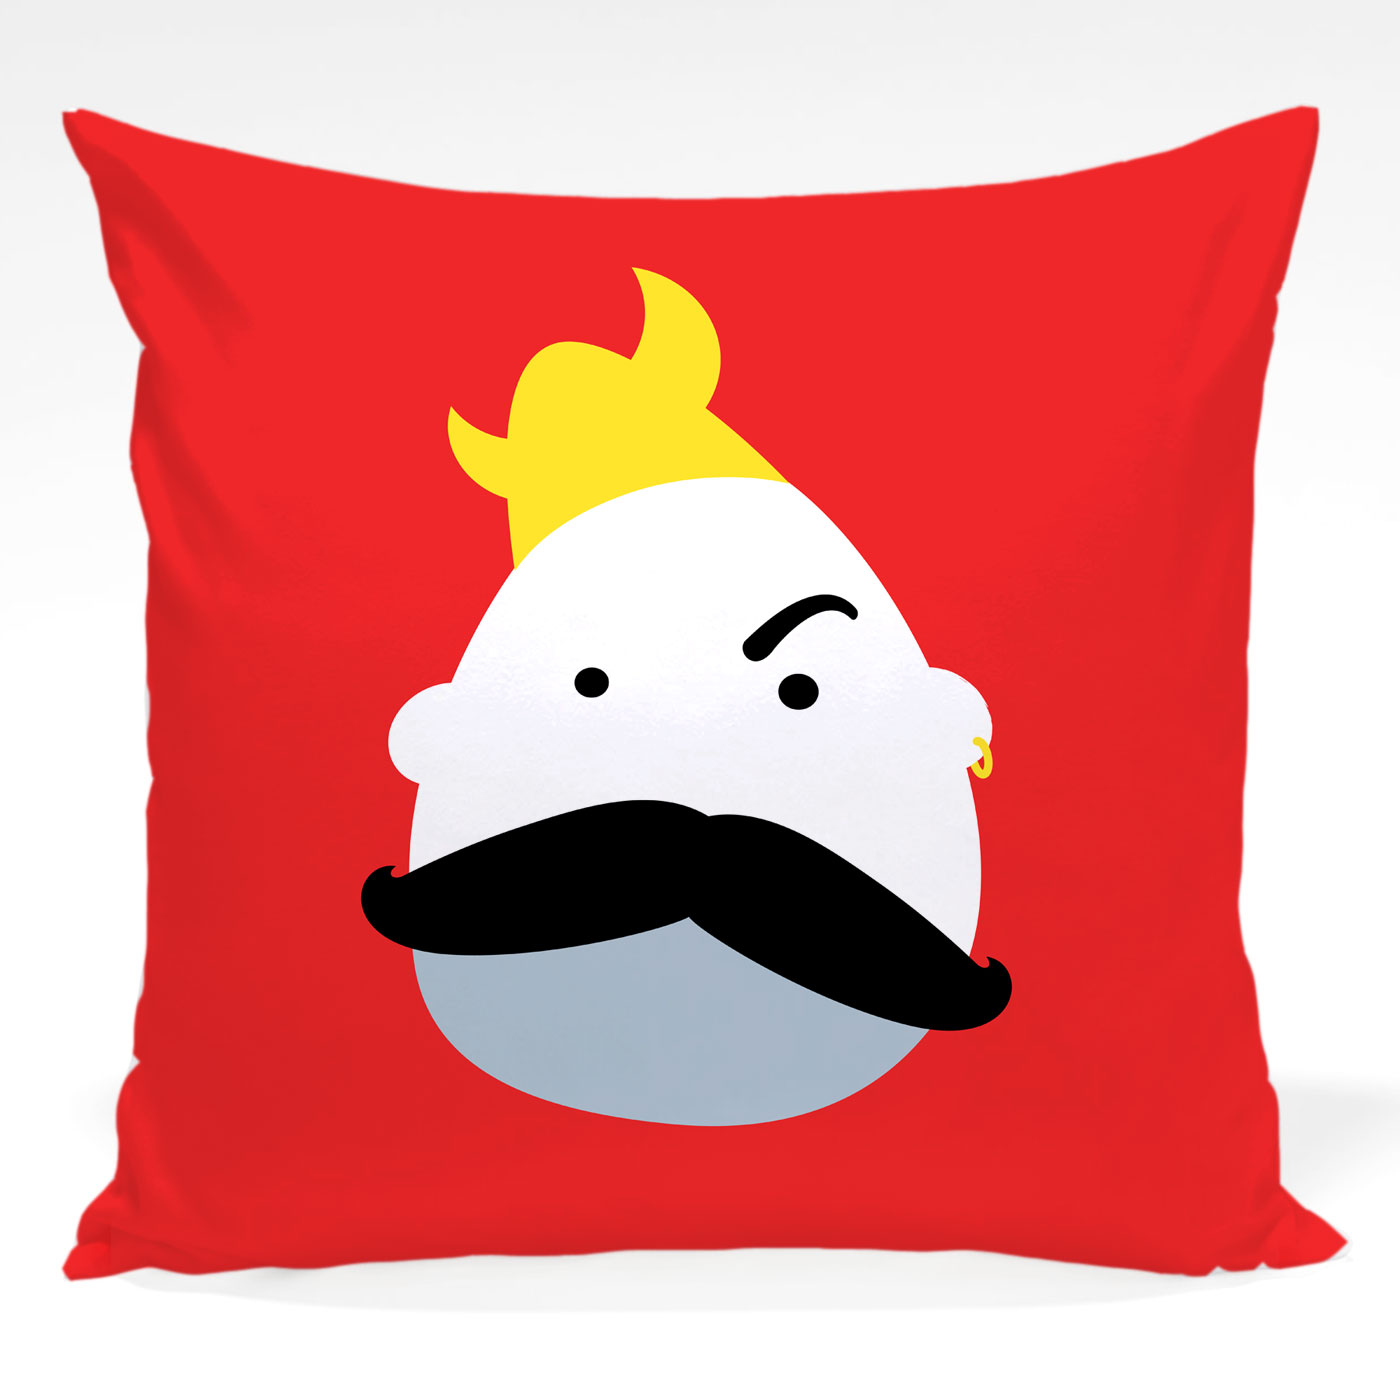 PMB222: Ironic Viking Pillow